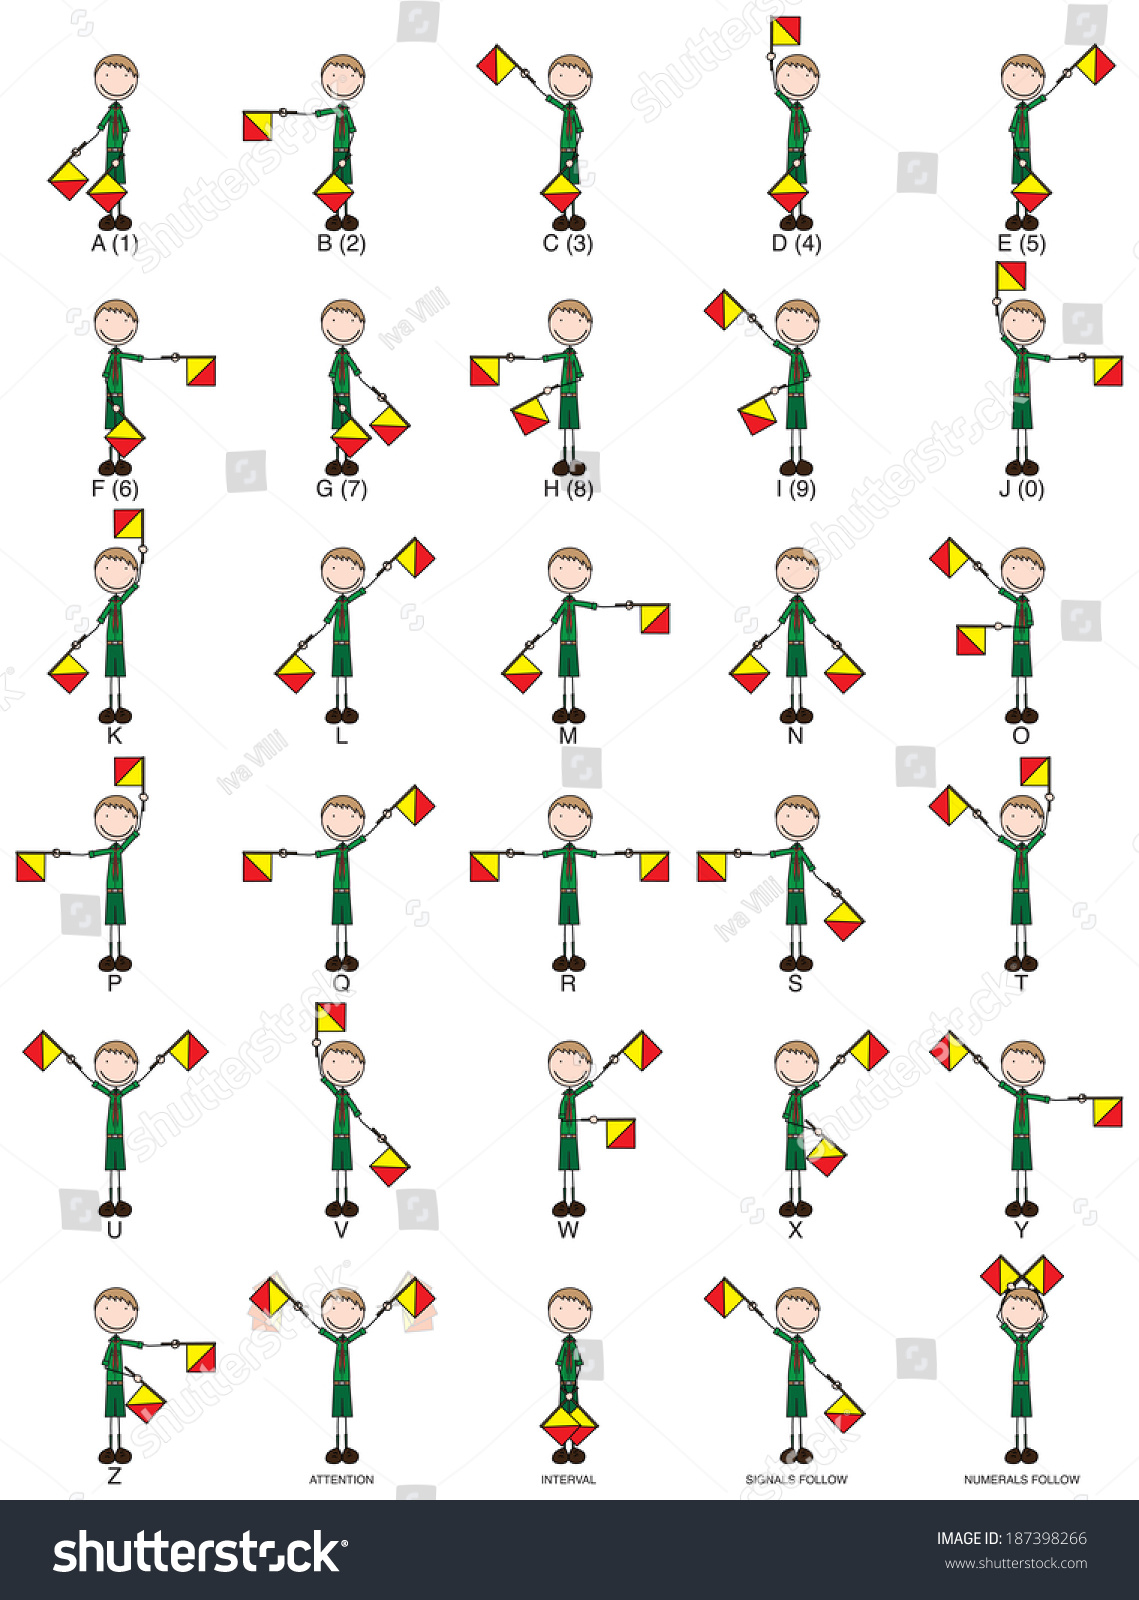 semaphore deutsch